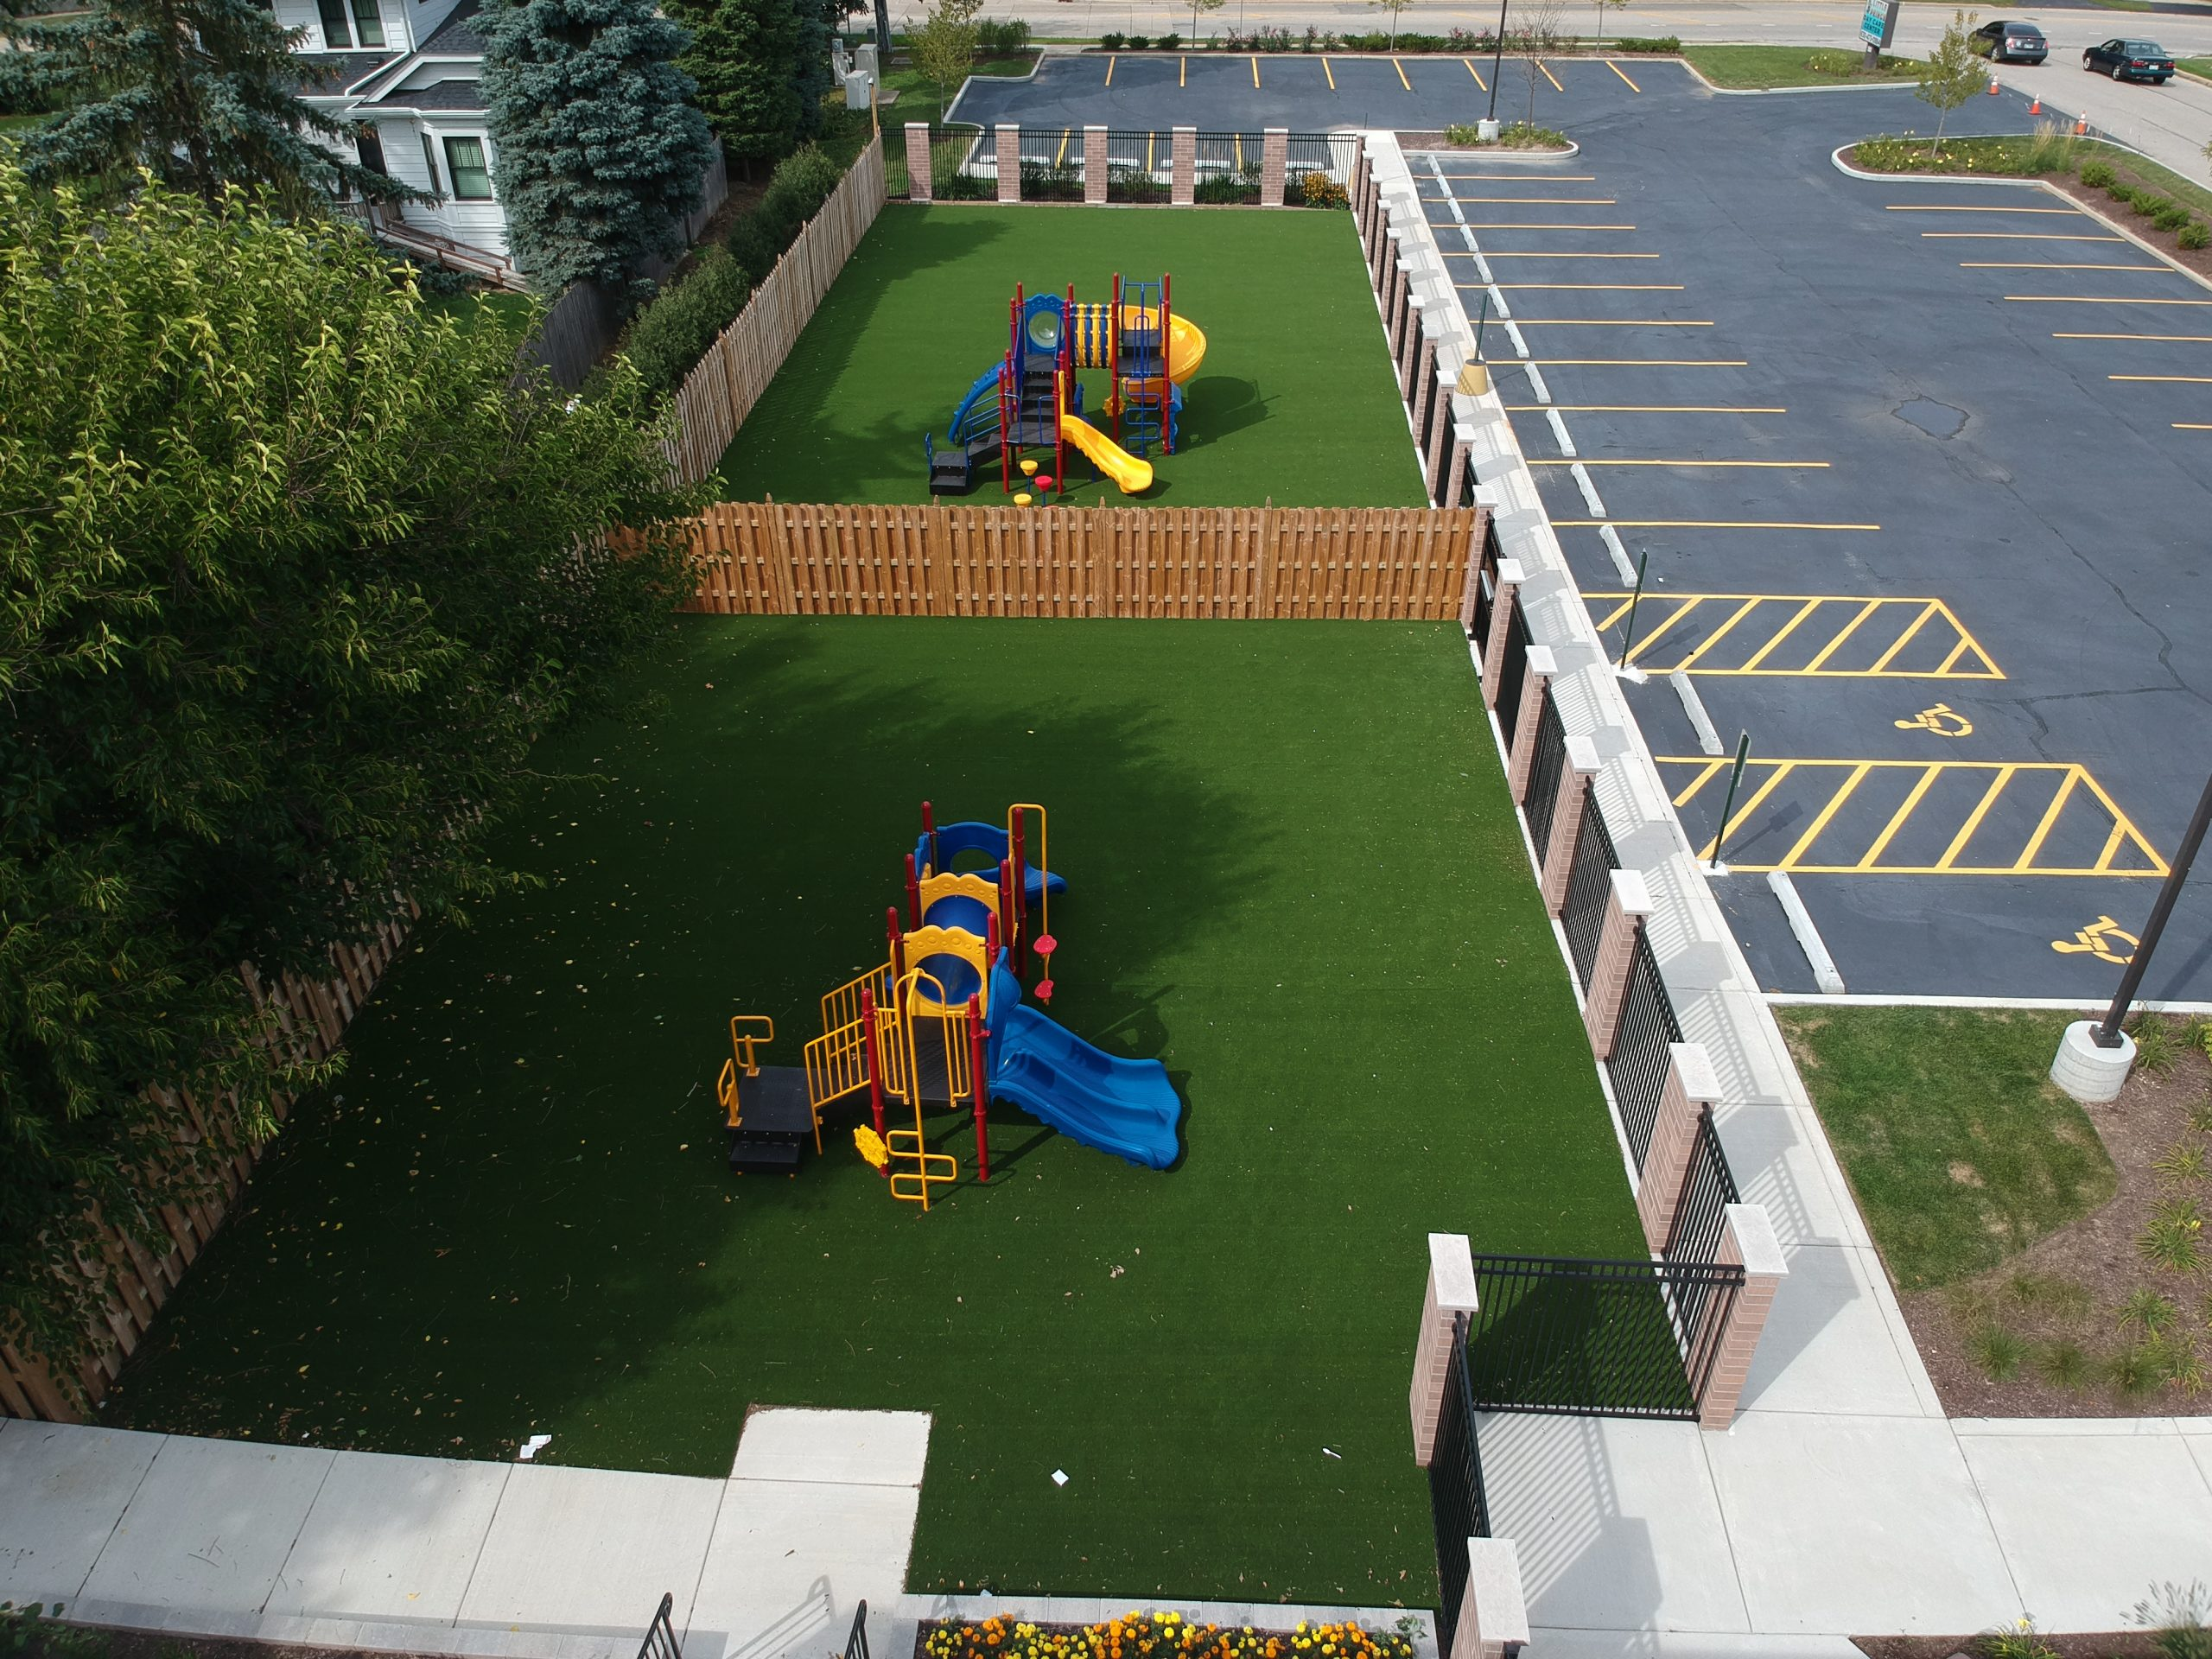 Aerial Drone Photo of the two play areas at Little Prince Daycare